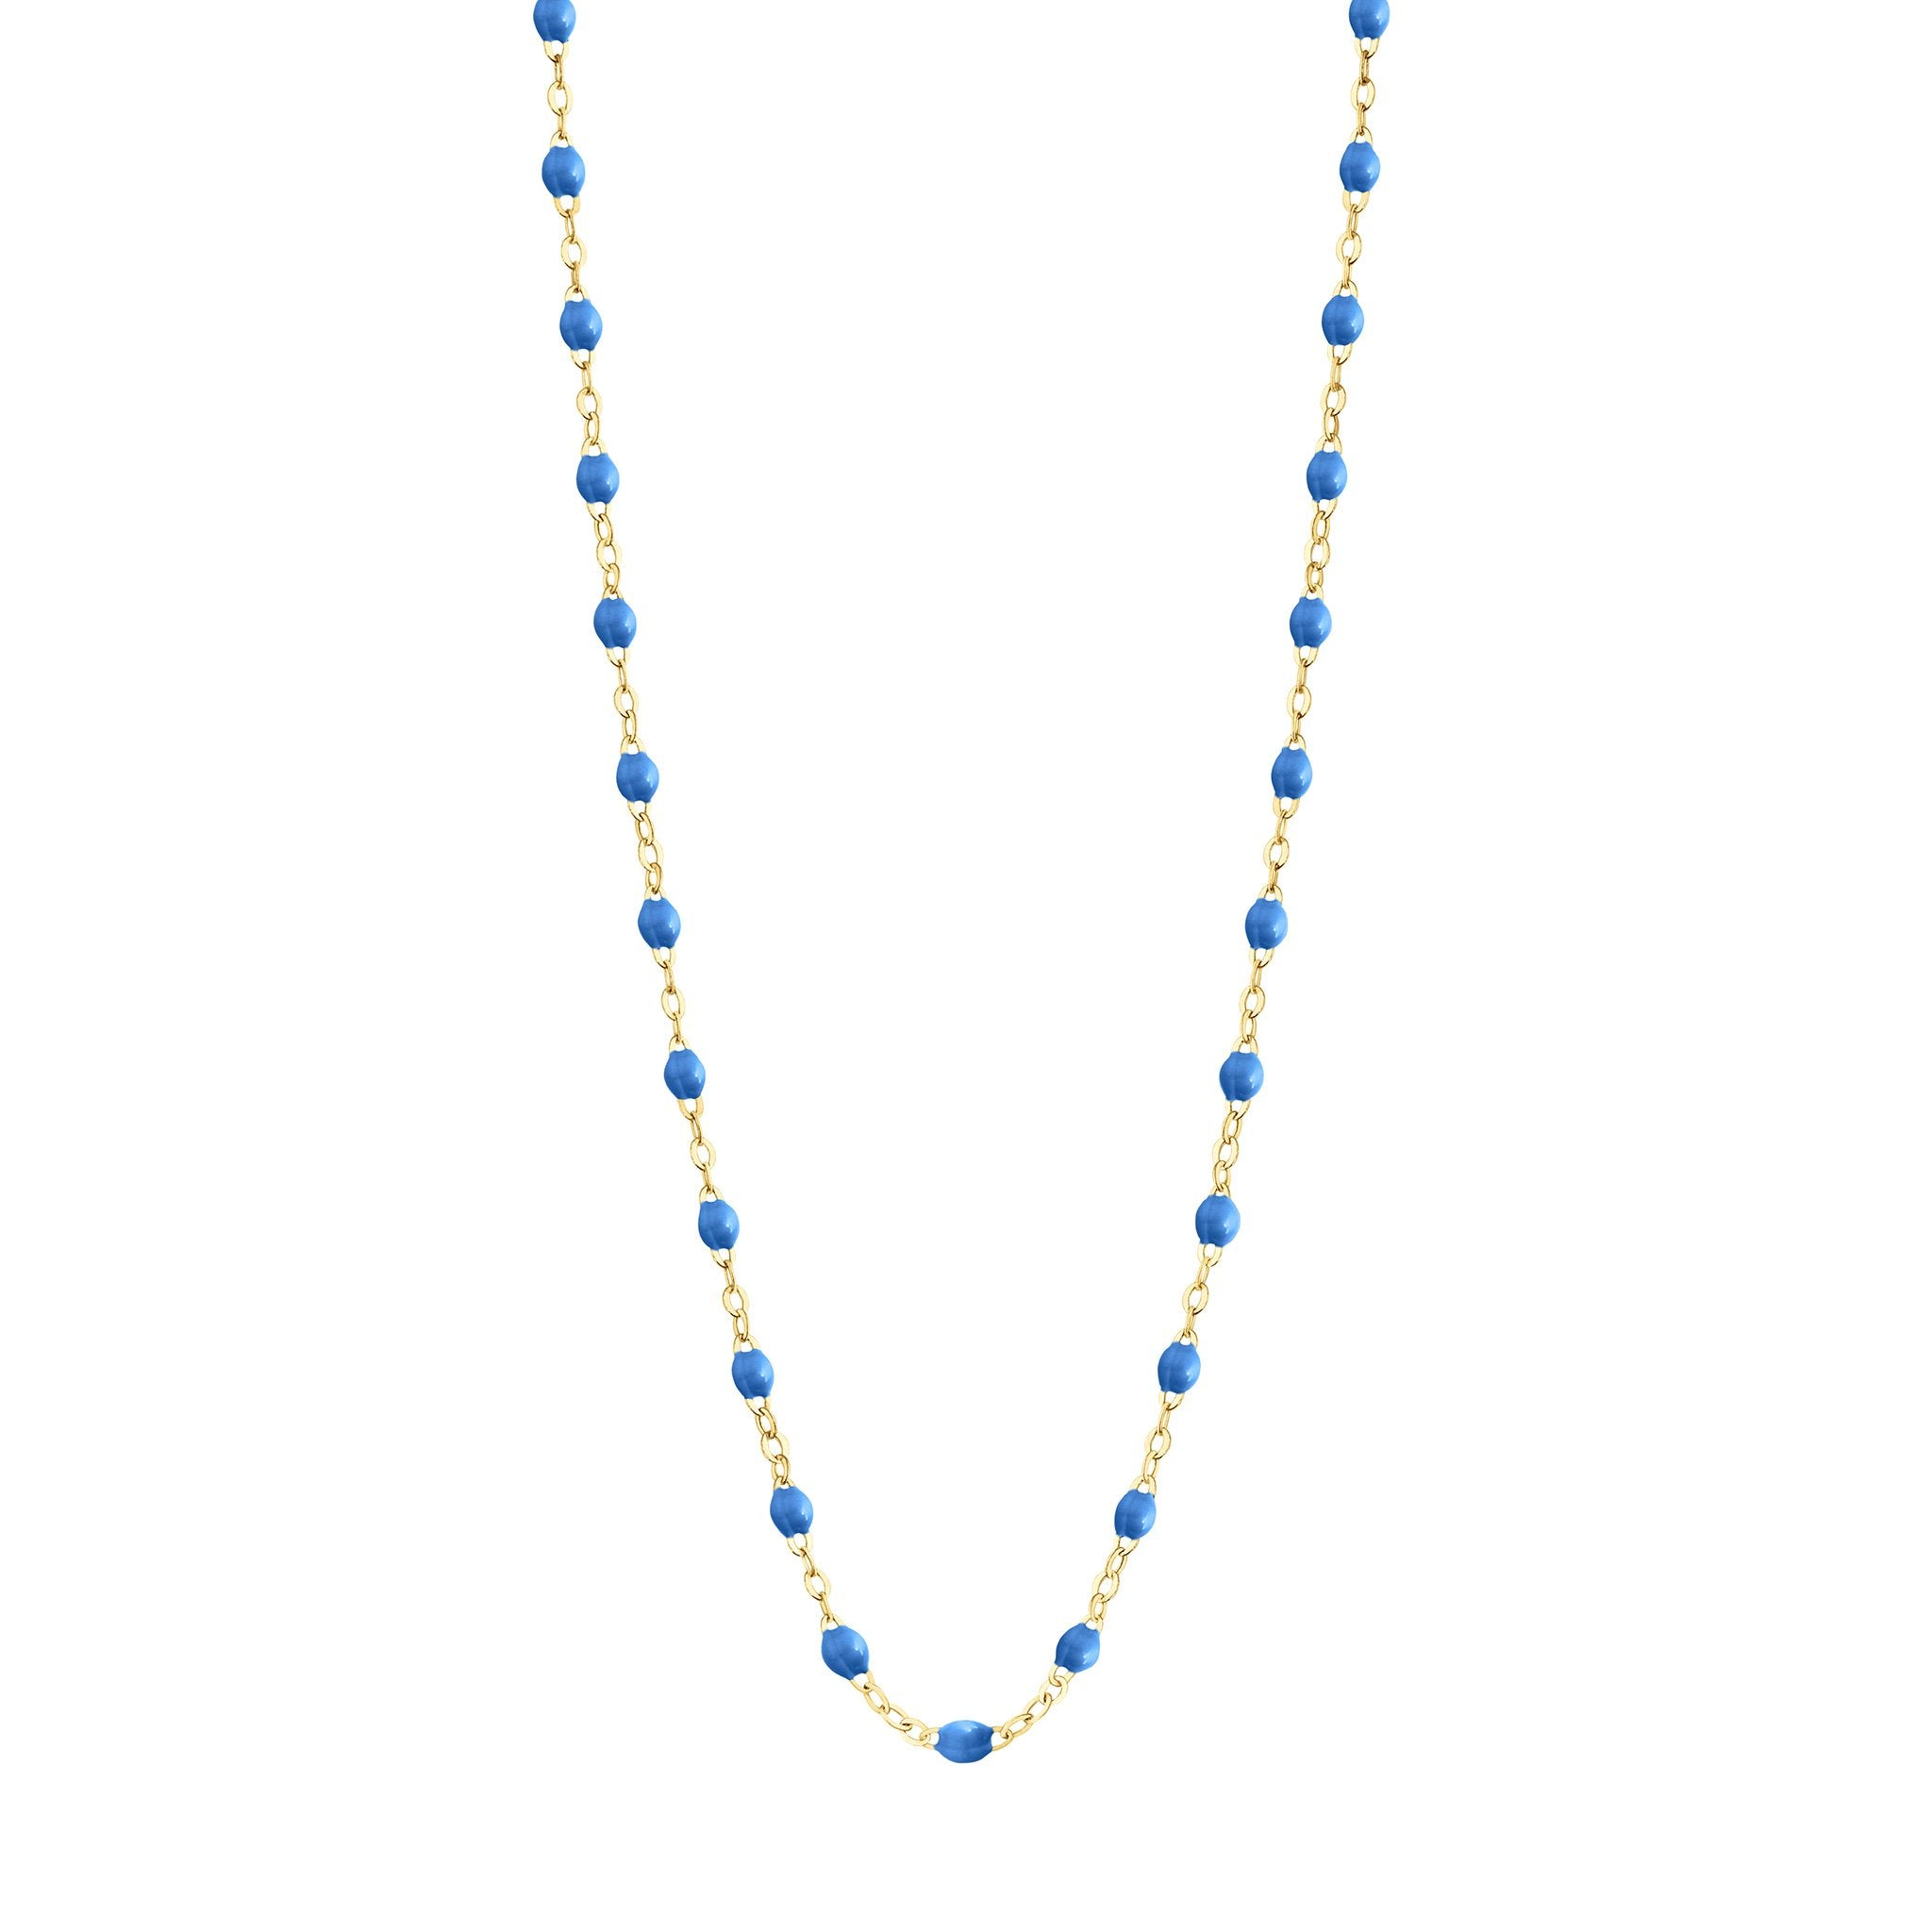 Gigi Clozeau - Classic Gigi Blue necklace, Yellow Gold, 19.7